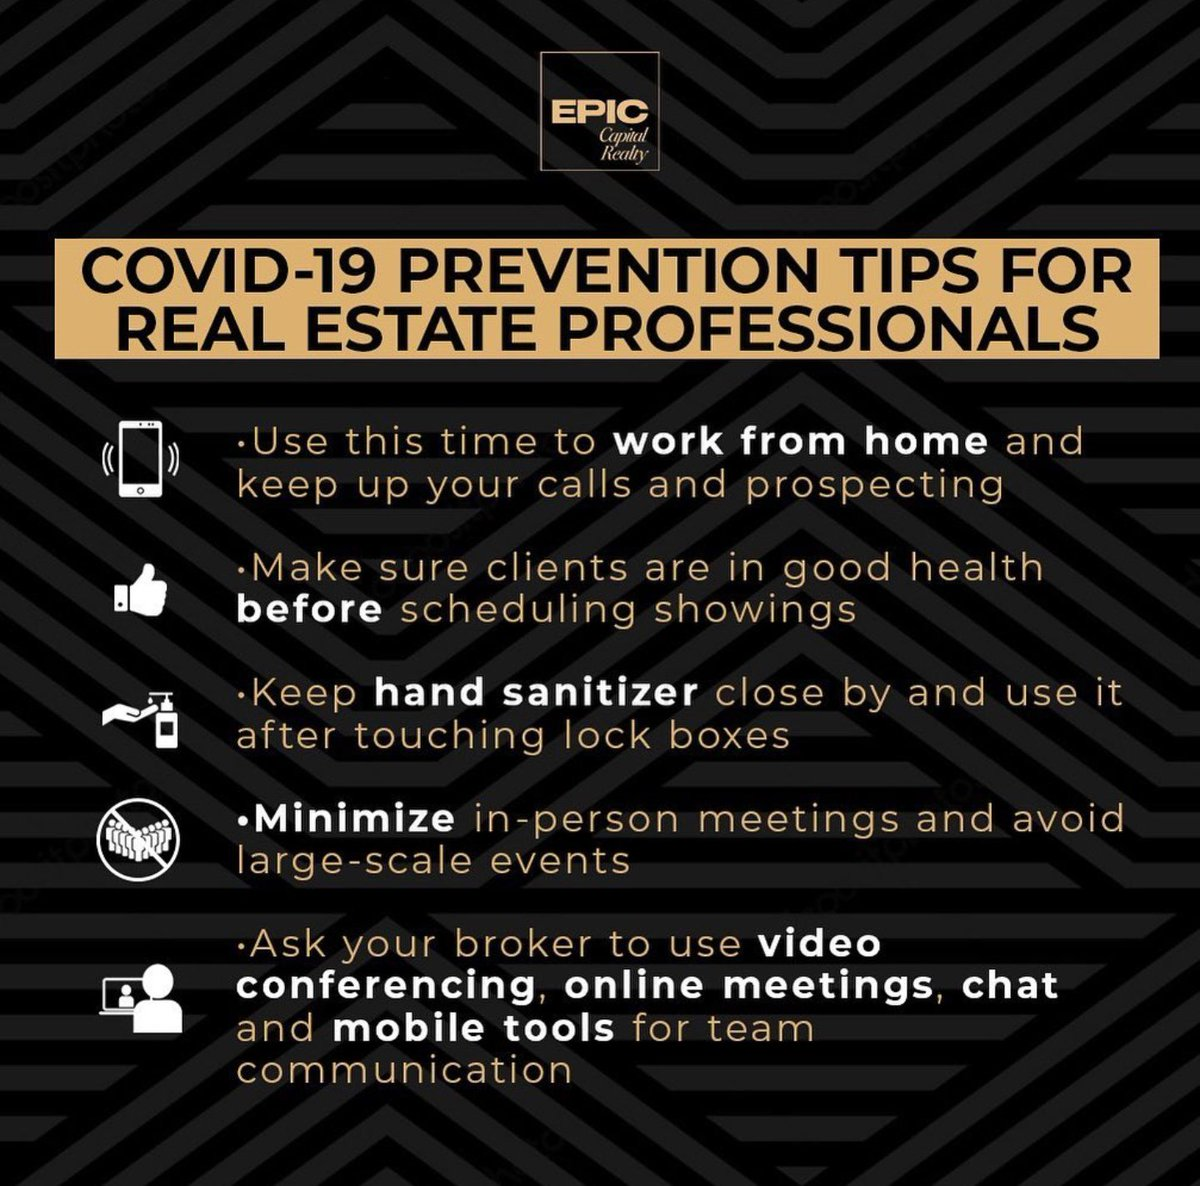 For those who are healthy, safe, and able to continue to work, use these preventive measures to keep your hustle going during the #coronavirus crisis.  #realestate #investment #investors #miami #buy #sell #shortsale #foreclosure #luxlife #luxury  #highend #luxurliving #luxlivingpic.twitter.com/TpAvsAzgxi